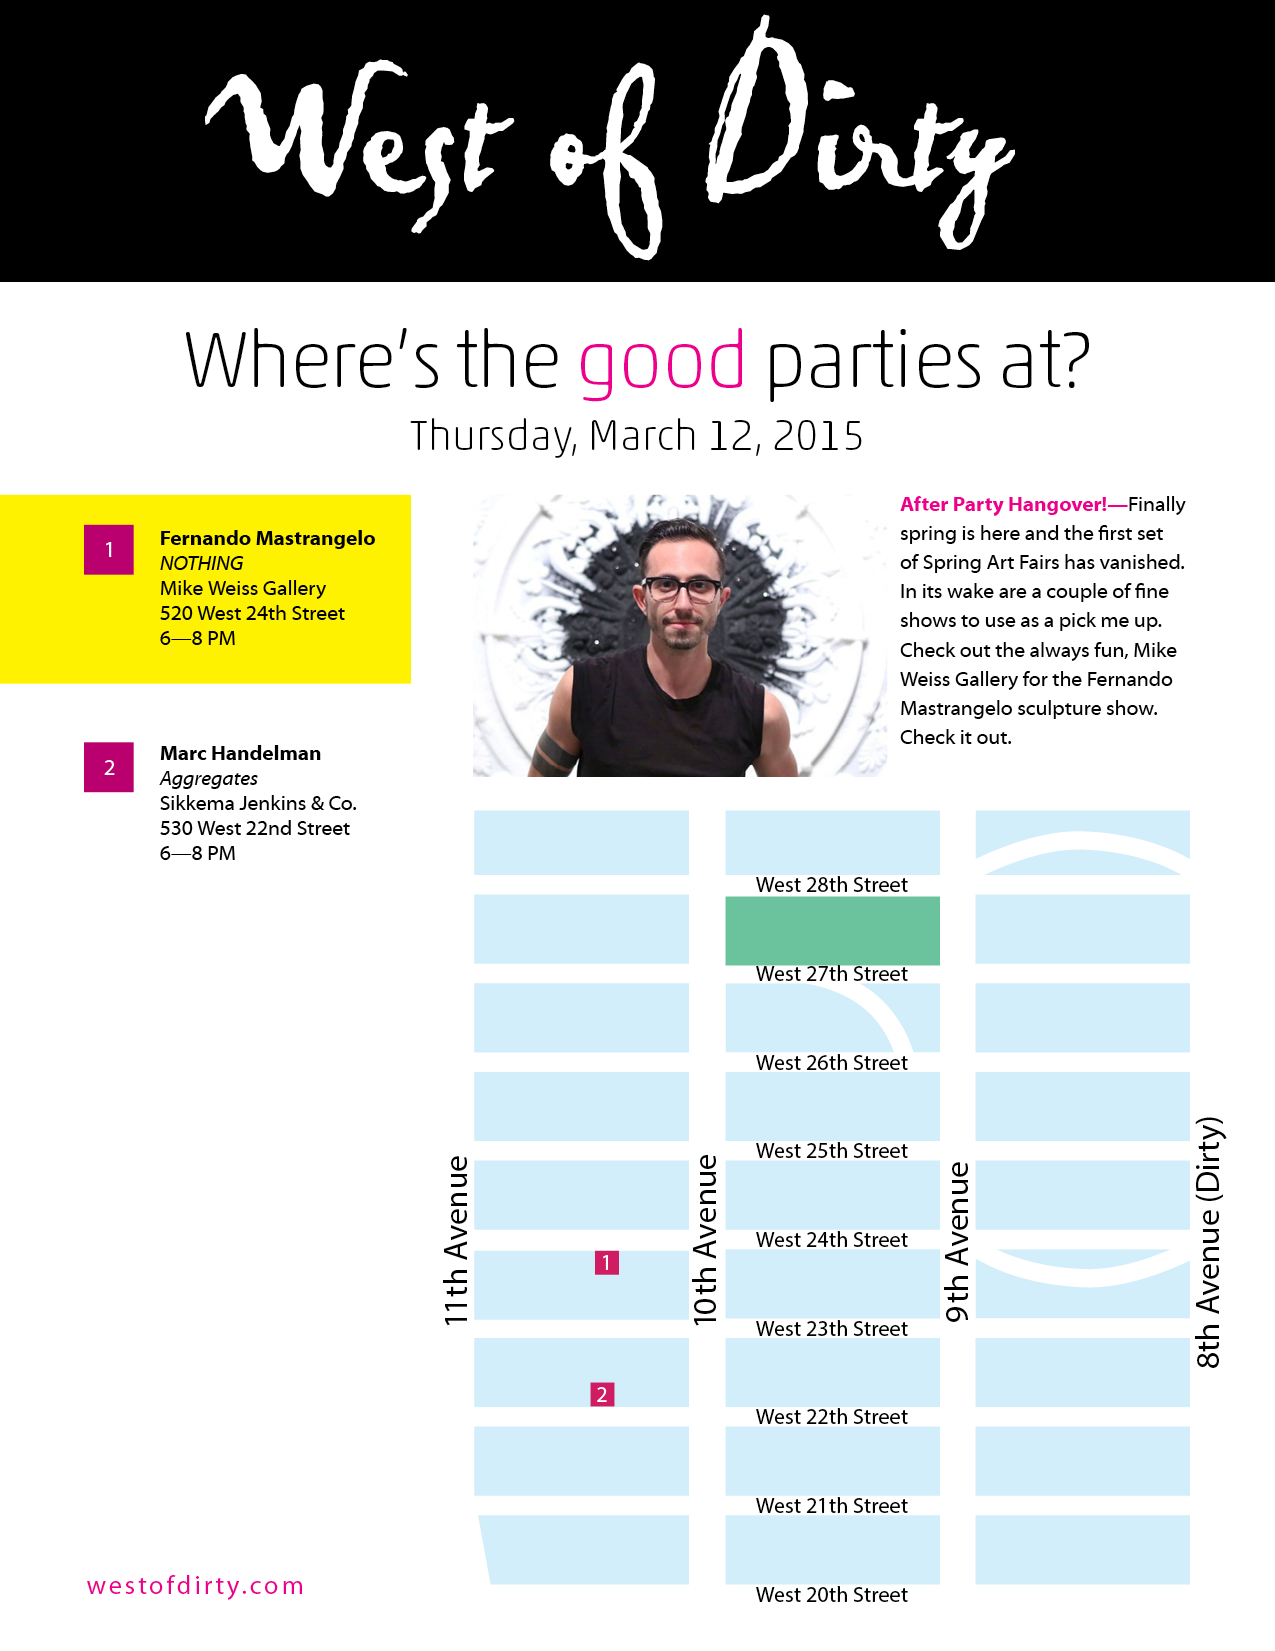 After Party Hangover! —Finally spring is here and the first set of Spring Art Fairs has vanished. In its wake are a couple of fine shows to use as a pick me up. Check out the always fun, Mike Weiss Gallery for the Fernando Mastrangelo sculpture show. Check it out.